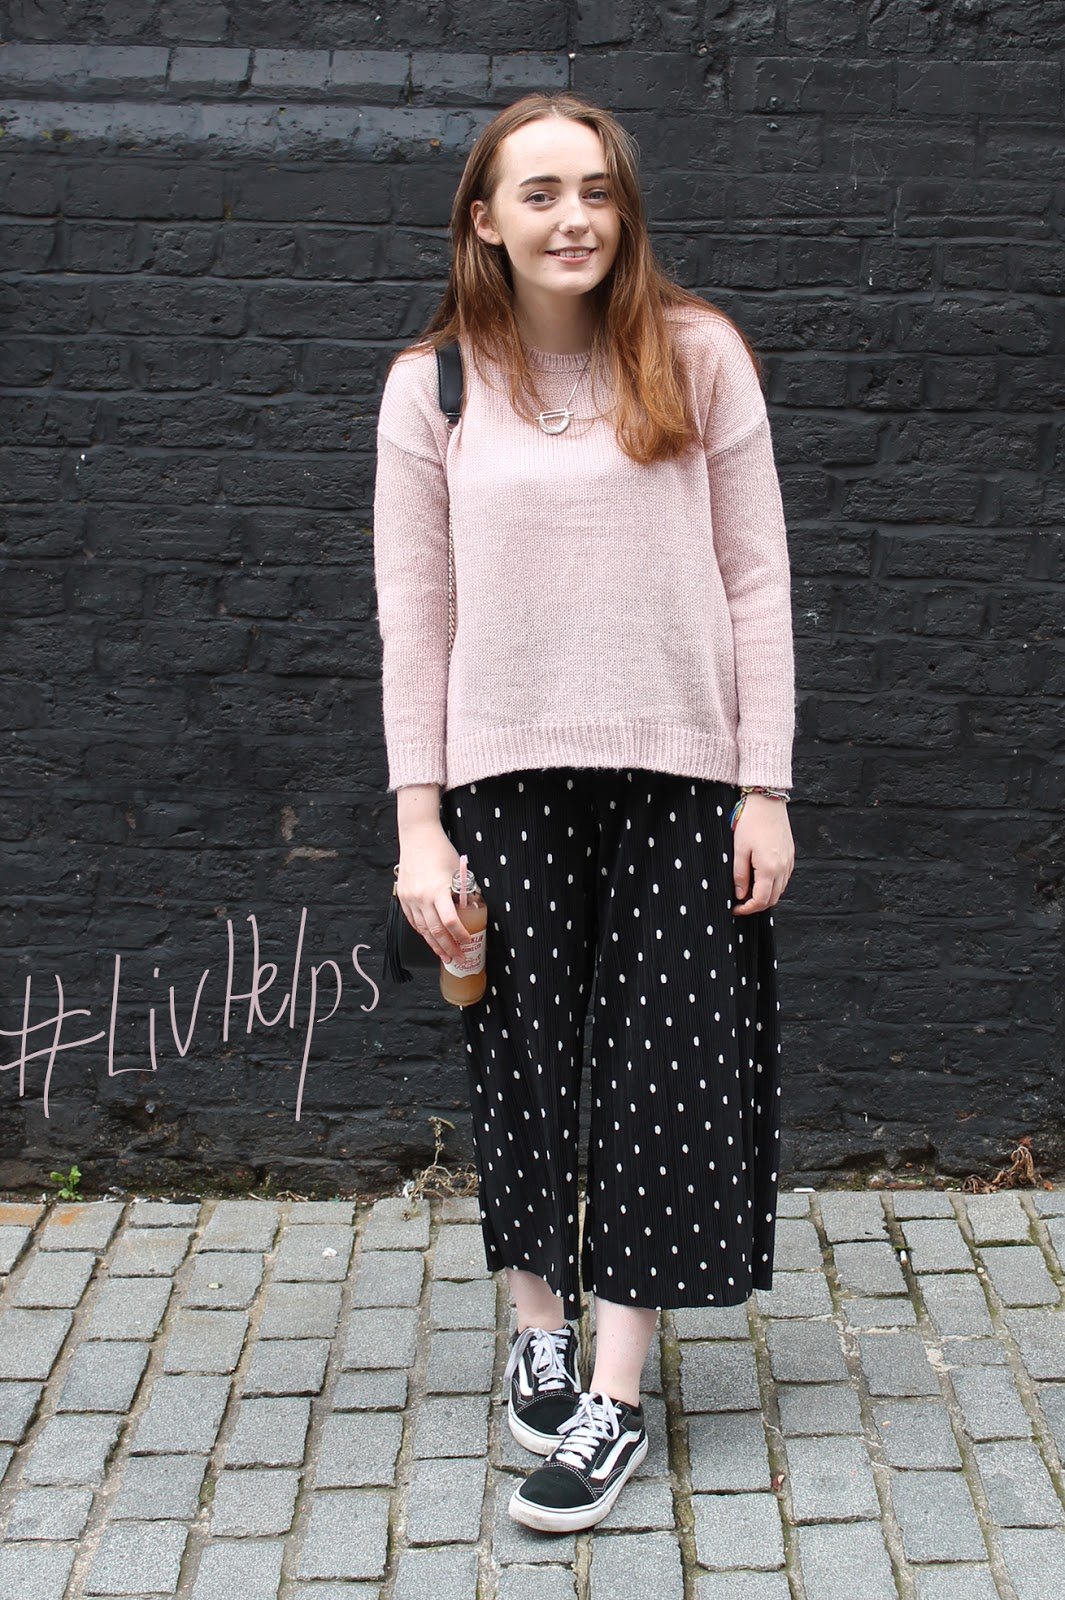 #livhelps blogger event outfit of the day, pale pink blush jumper new look, zara polka dot trousers, vans old skool trainers, topshop saddle bag